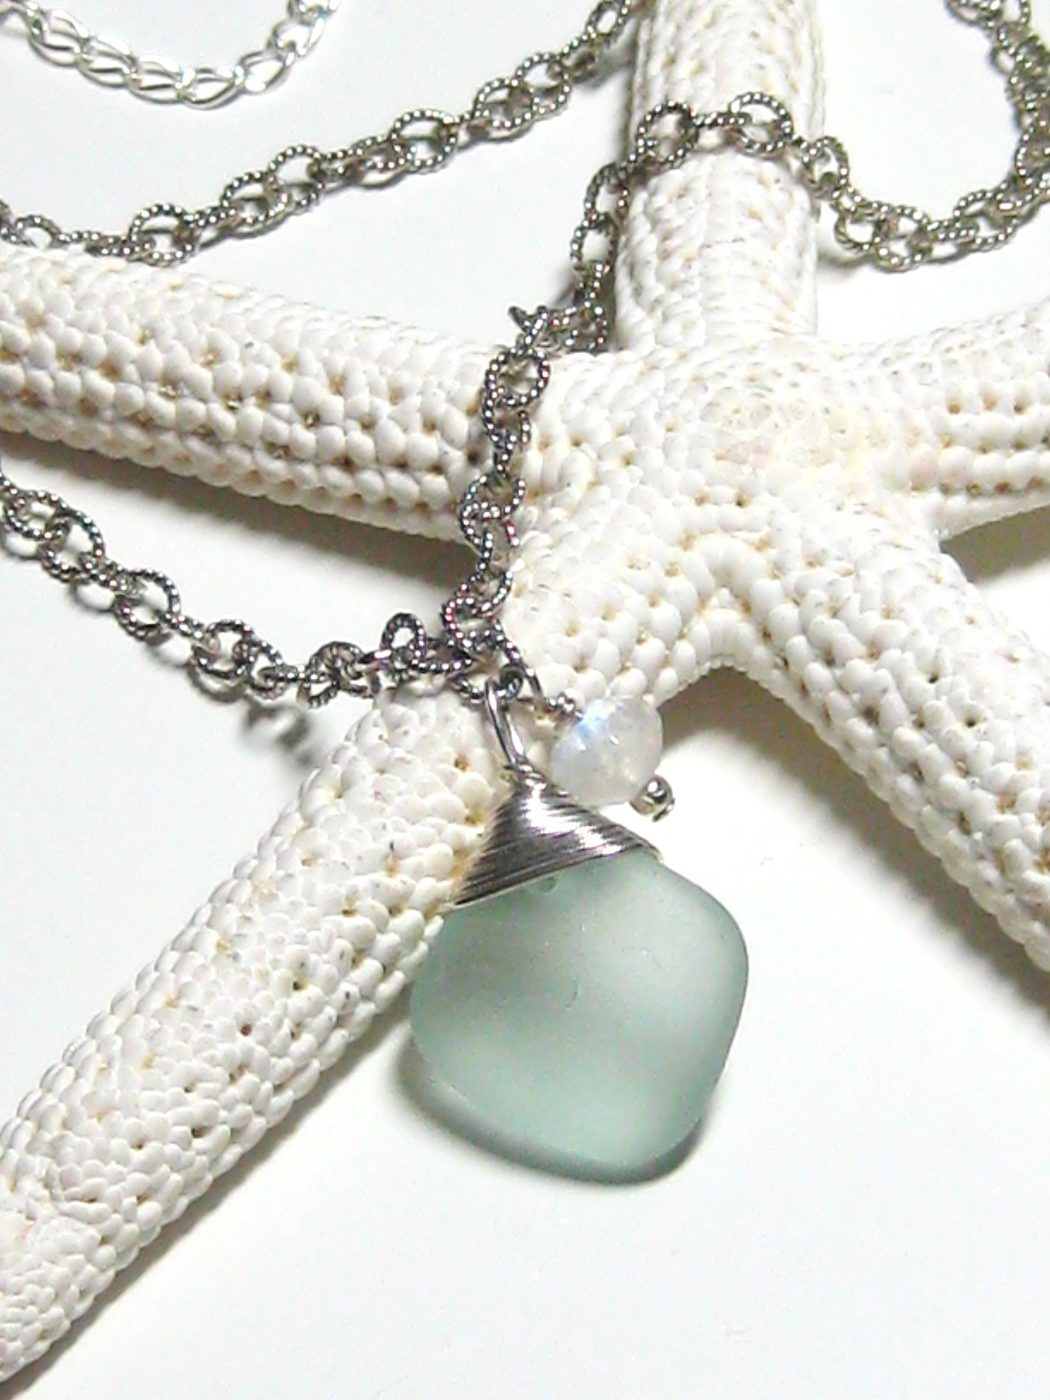 lita-sea-glass-jewelry-catalog-2010-101 The Best Jewelry Pieces That Women Like